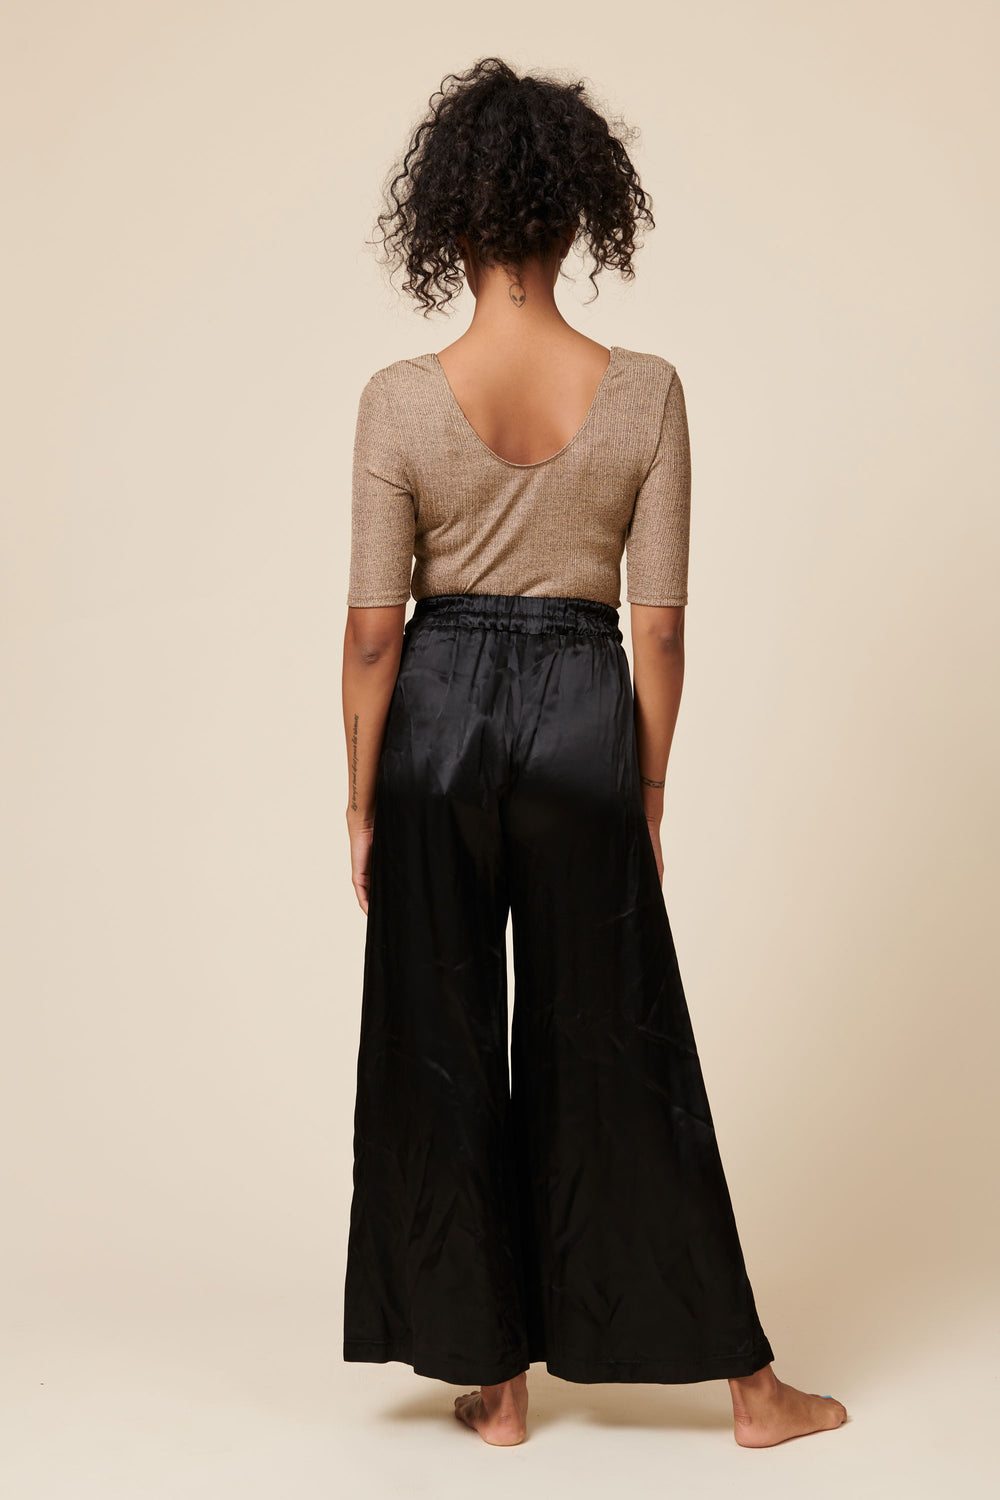 Norah Pants in Shiny Black - Whimsy & Row